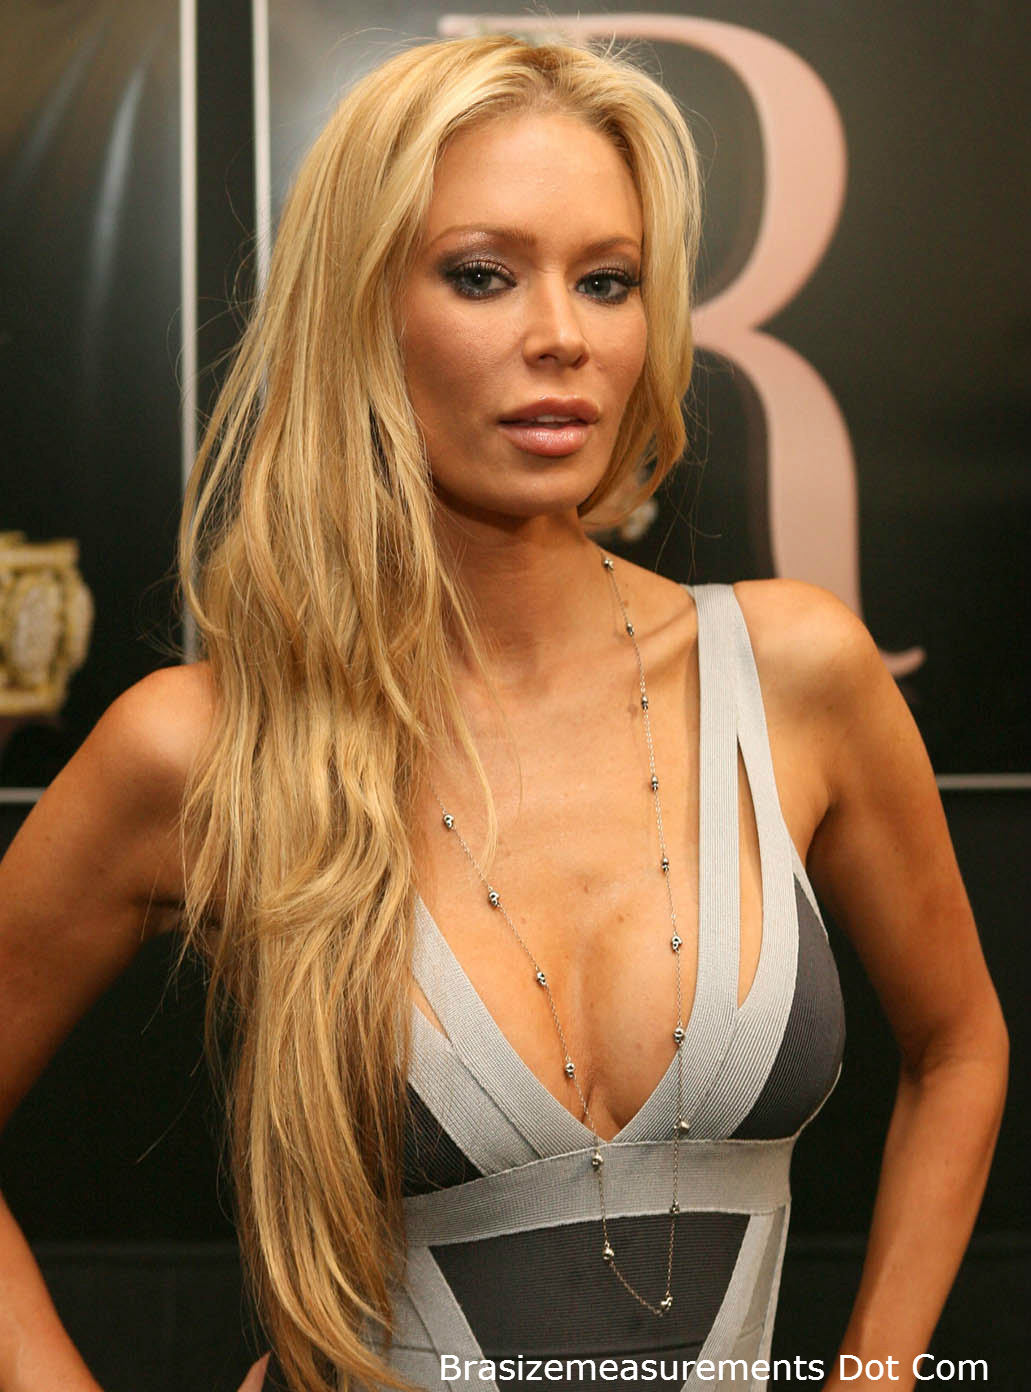 Jenna jameson measurements-6415